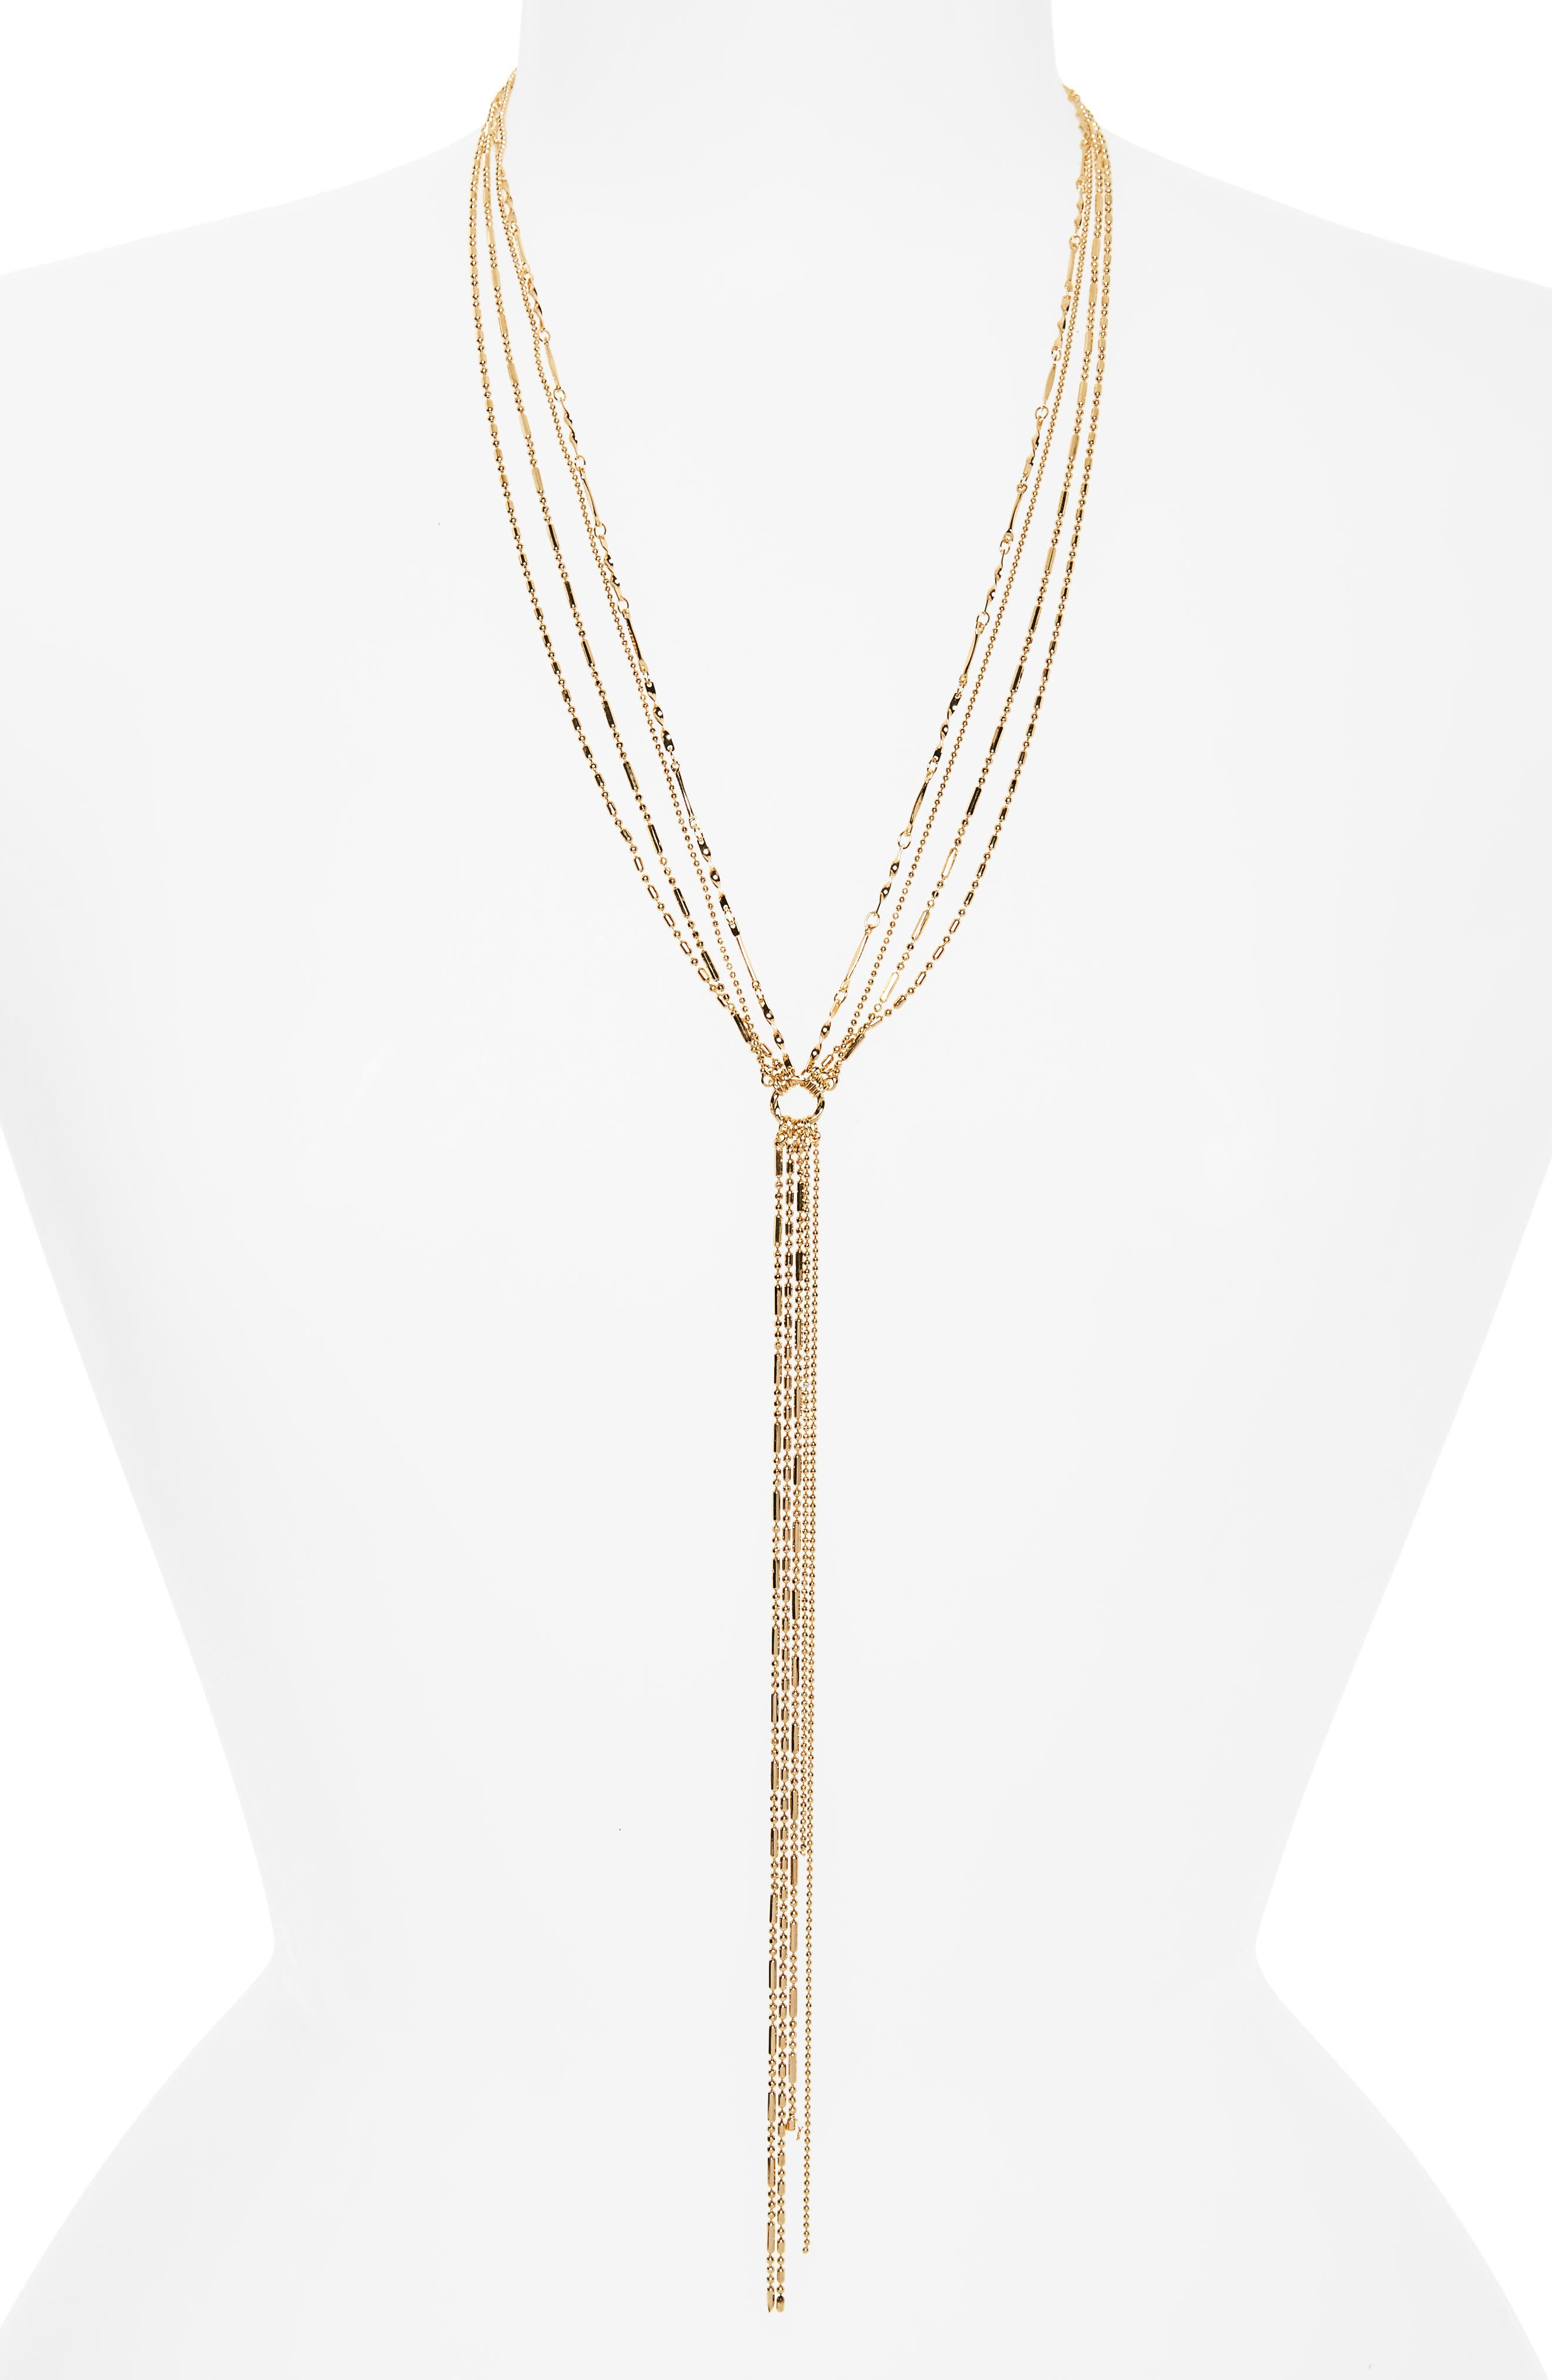 PANACEA Multistrand Lariat Necklace